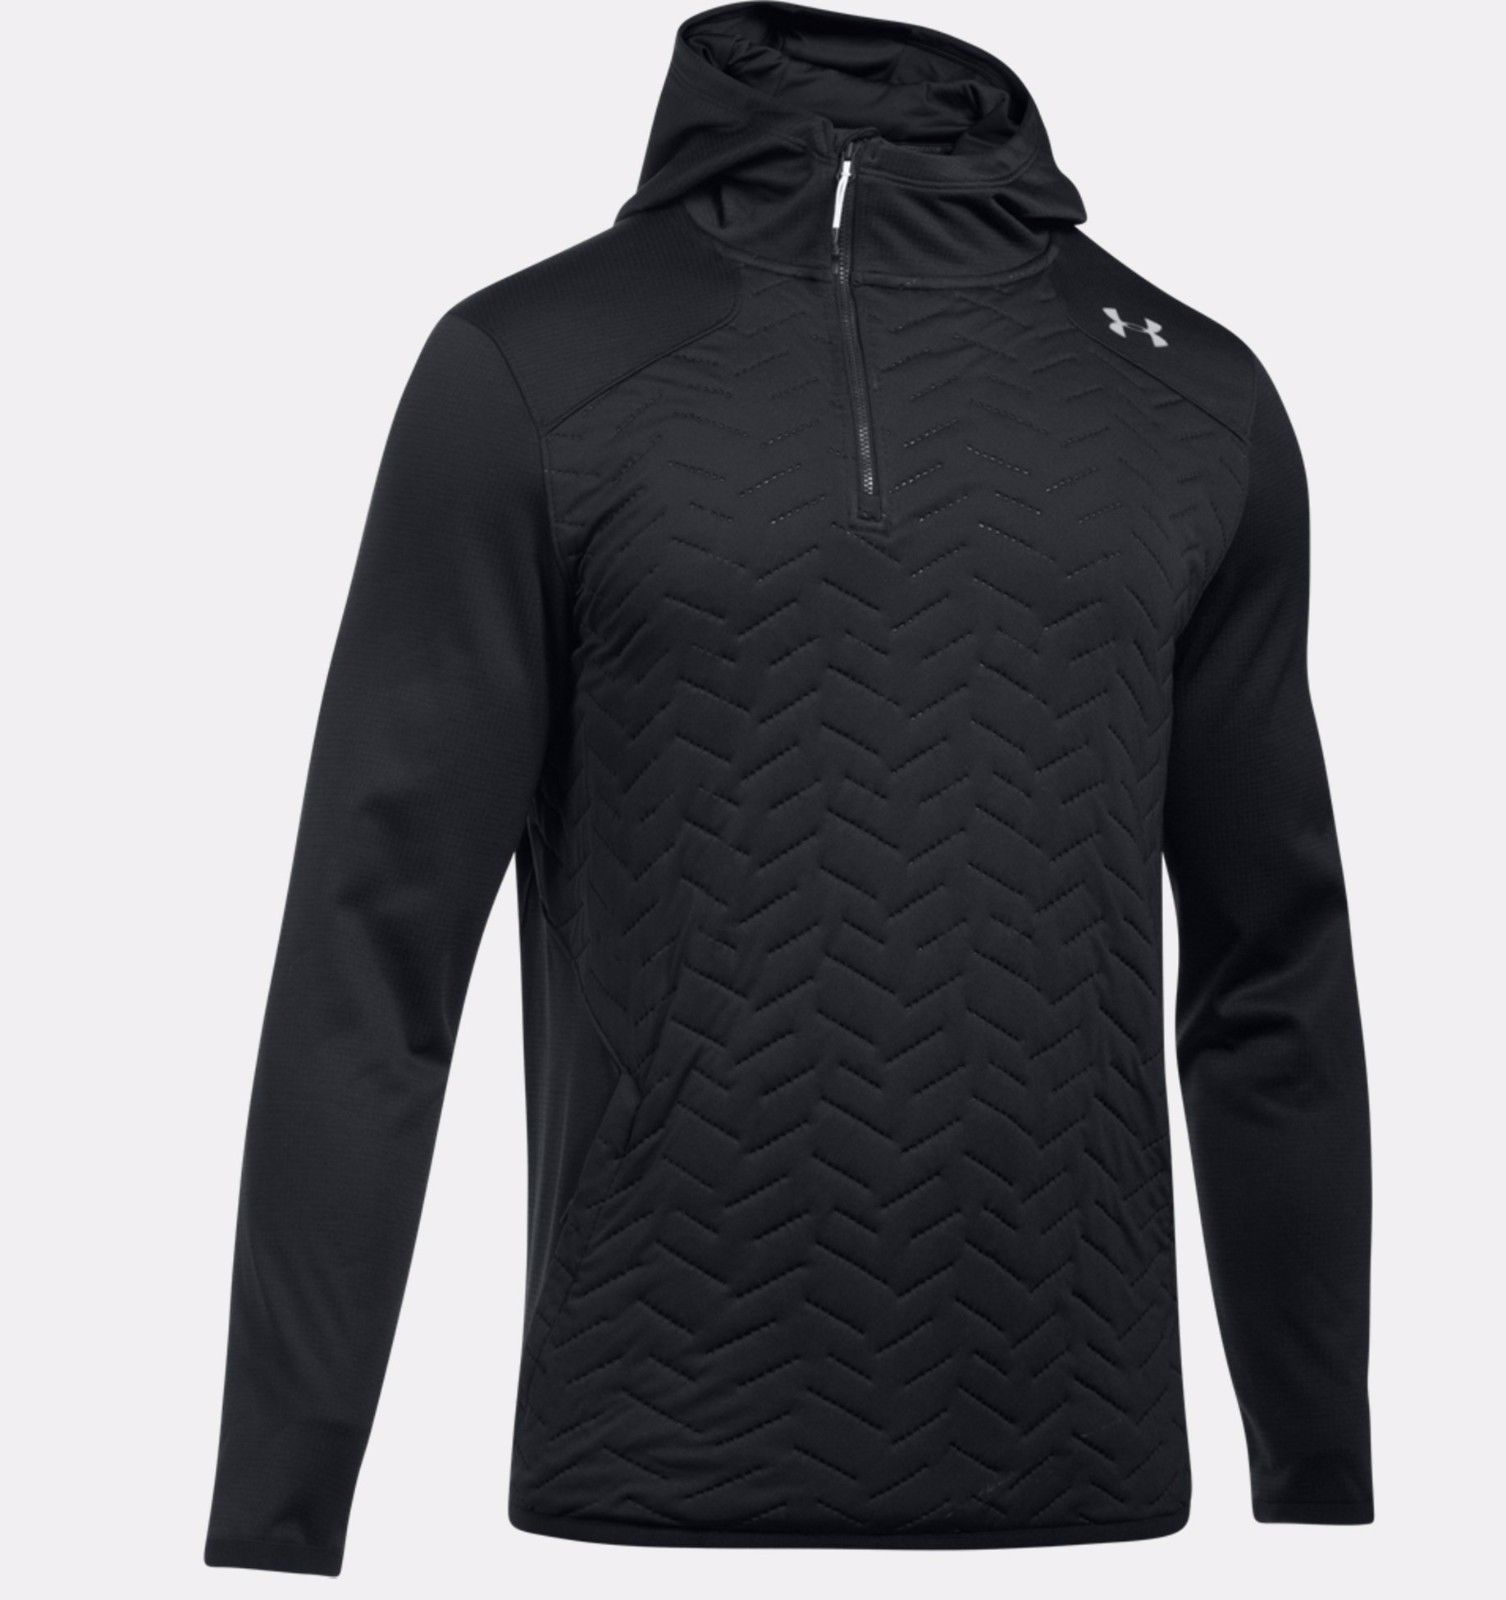 קפוצ'ון אנדר ארמור 1299169-001  Under Armour Men's ColdGear® Reactor Fleece Insulated ¼ Zip